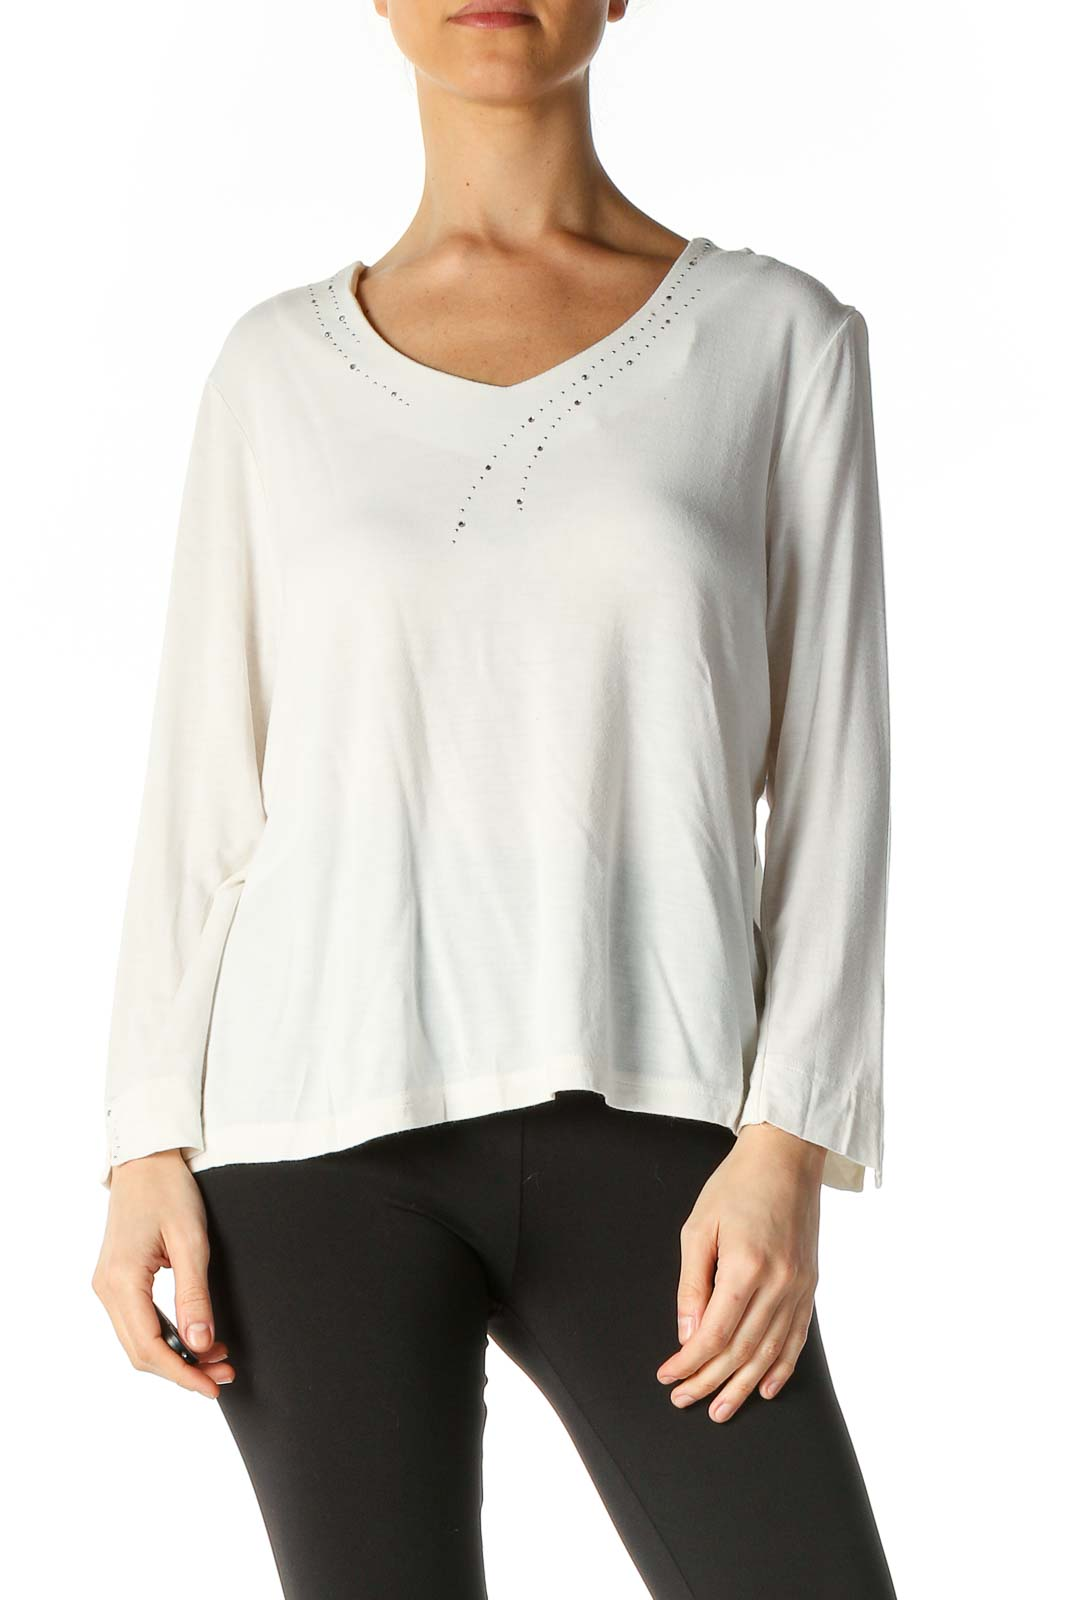 White Casual Brunch Blouse Front